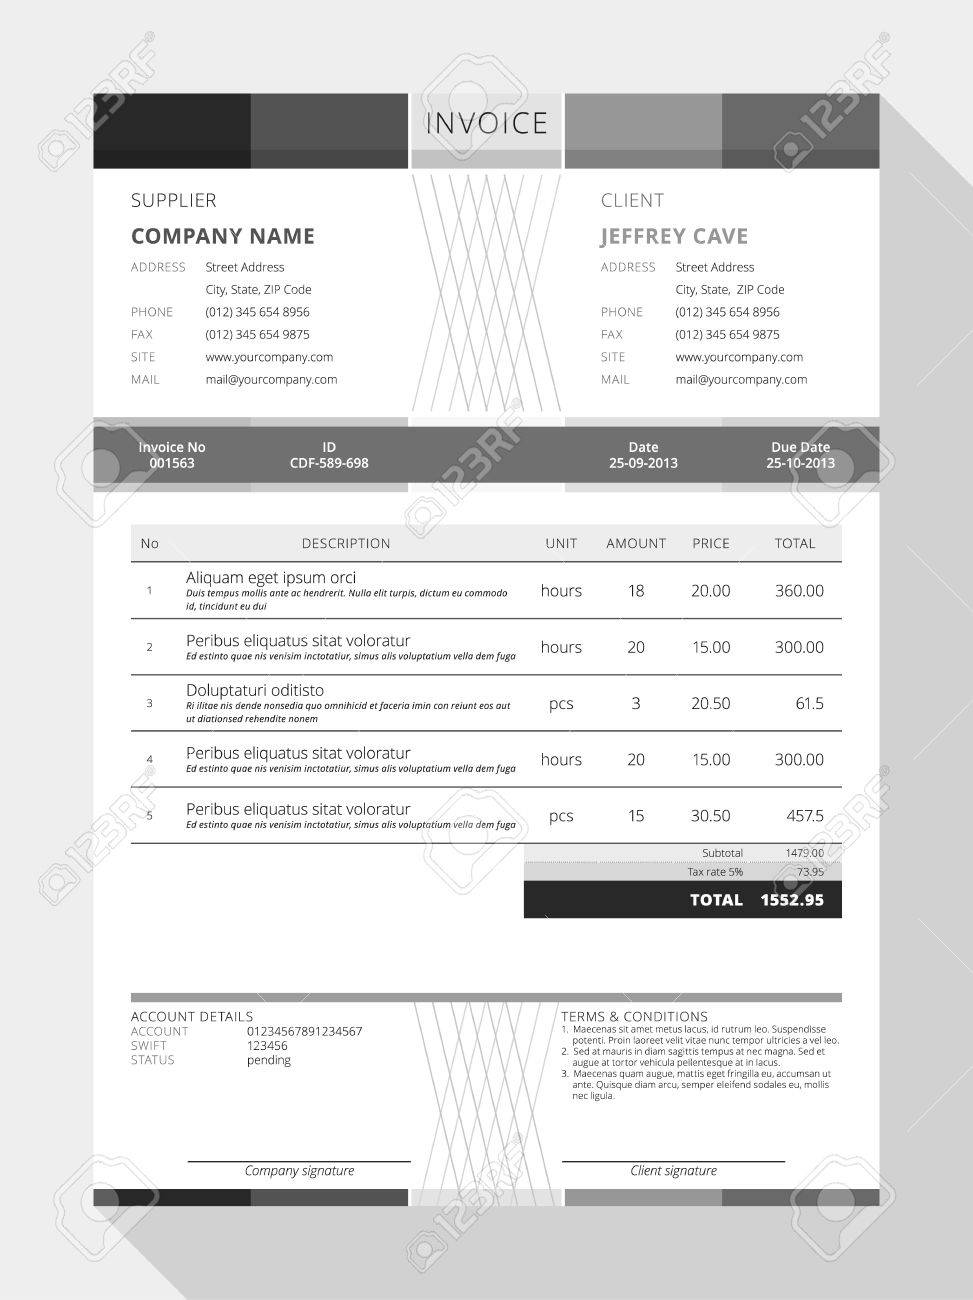 Pxworkoutfreeus  Scenic Design An Invoice  Professional Graphic Design Invoice  With Licious Vector Customizable Invoice Form Template Design Vector   Design An Invoice With Enchanting Invoice And Inventory Management Software Also Company Invoice Format In Addition Supplier Invoice Processing And Purchase Order To Invoice Process As Well As Tax Invoice Software Additionally Basic Invoice Templates From Happytomco With Pxworkoutfreeus  Licious Design An Invoice  Professional Graphic Design Invoice  With Enchanting Vector Customizable Invoice Form Template Design Vector   Design An Invoice And Scenic Invoice And Inventory Management Software Also Company Invoice Format In Addition Supplier Invoice Processing From Happytomco